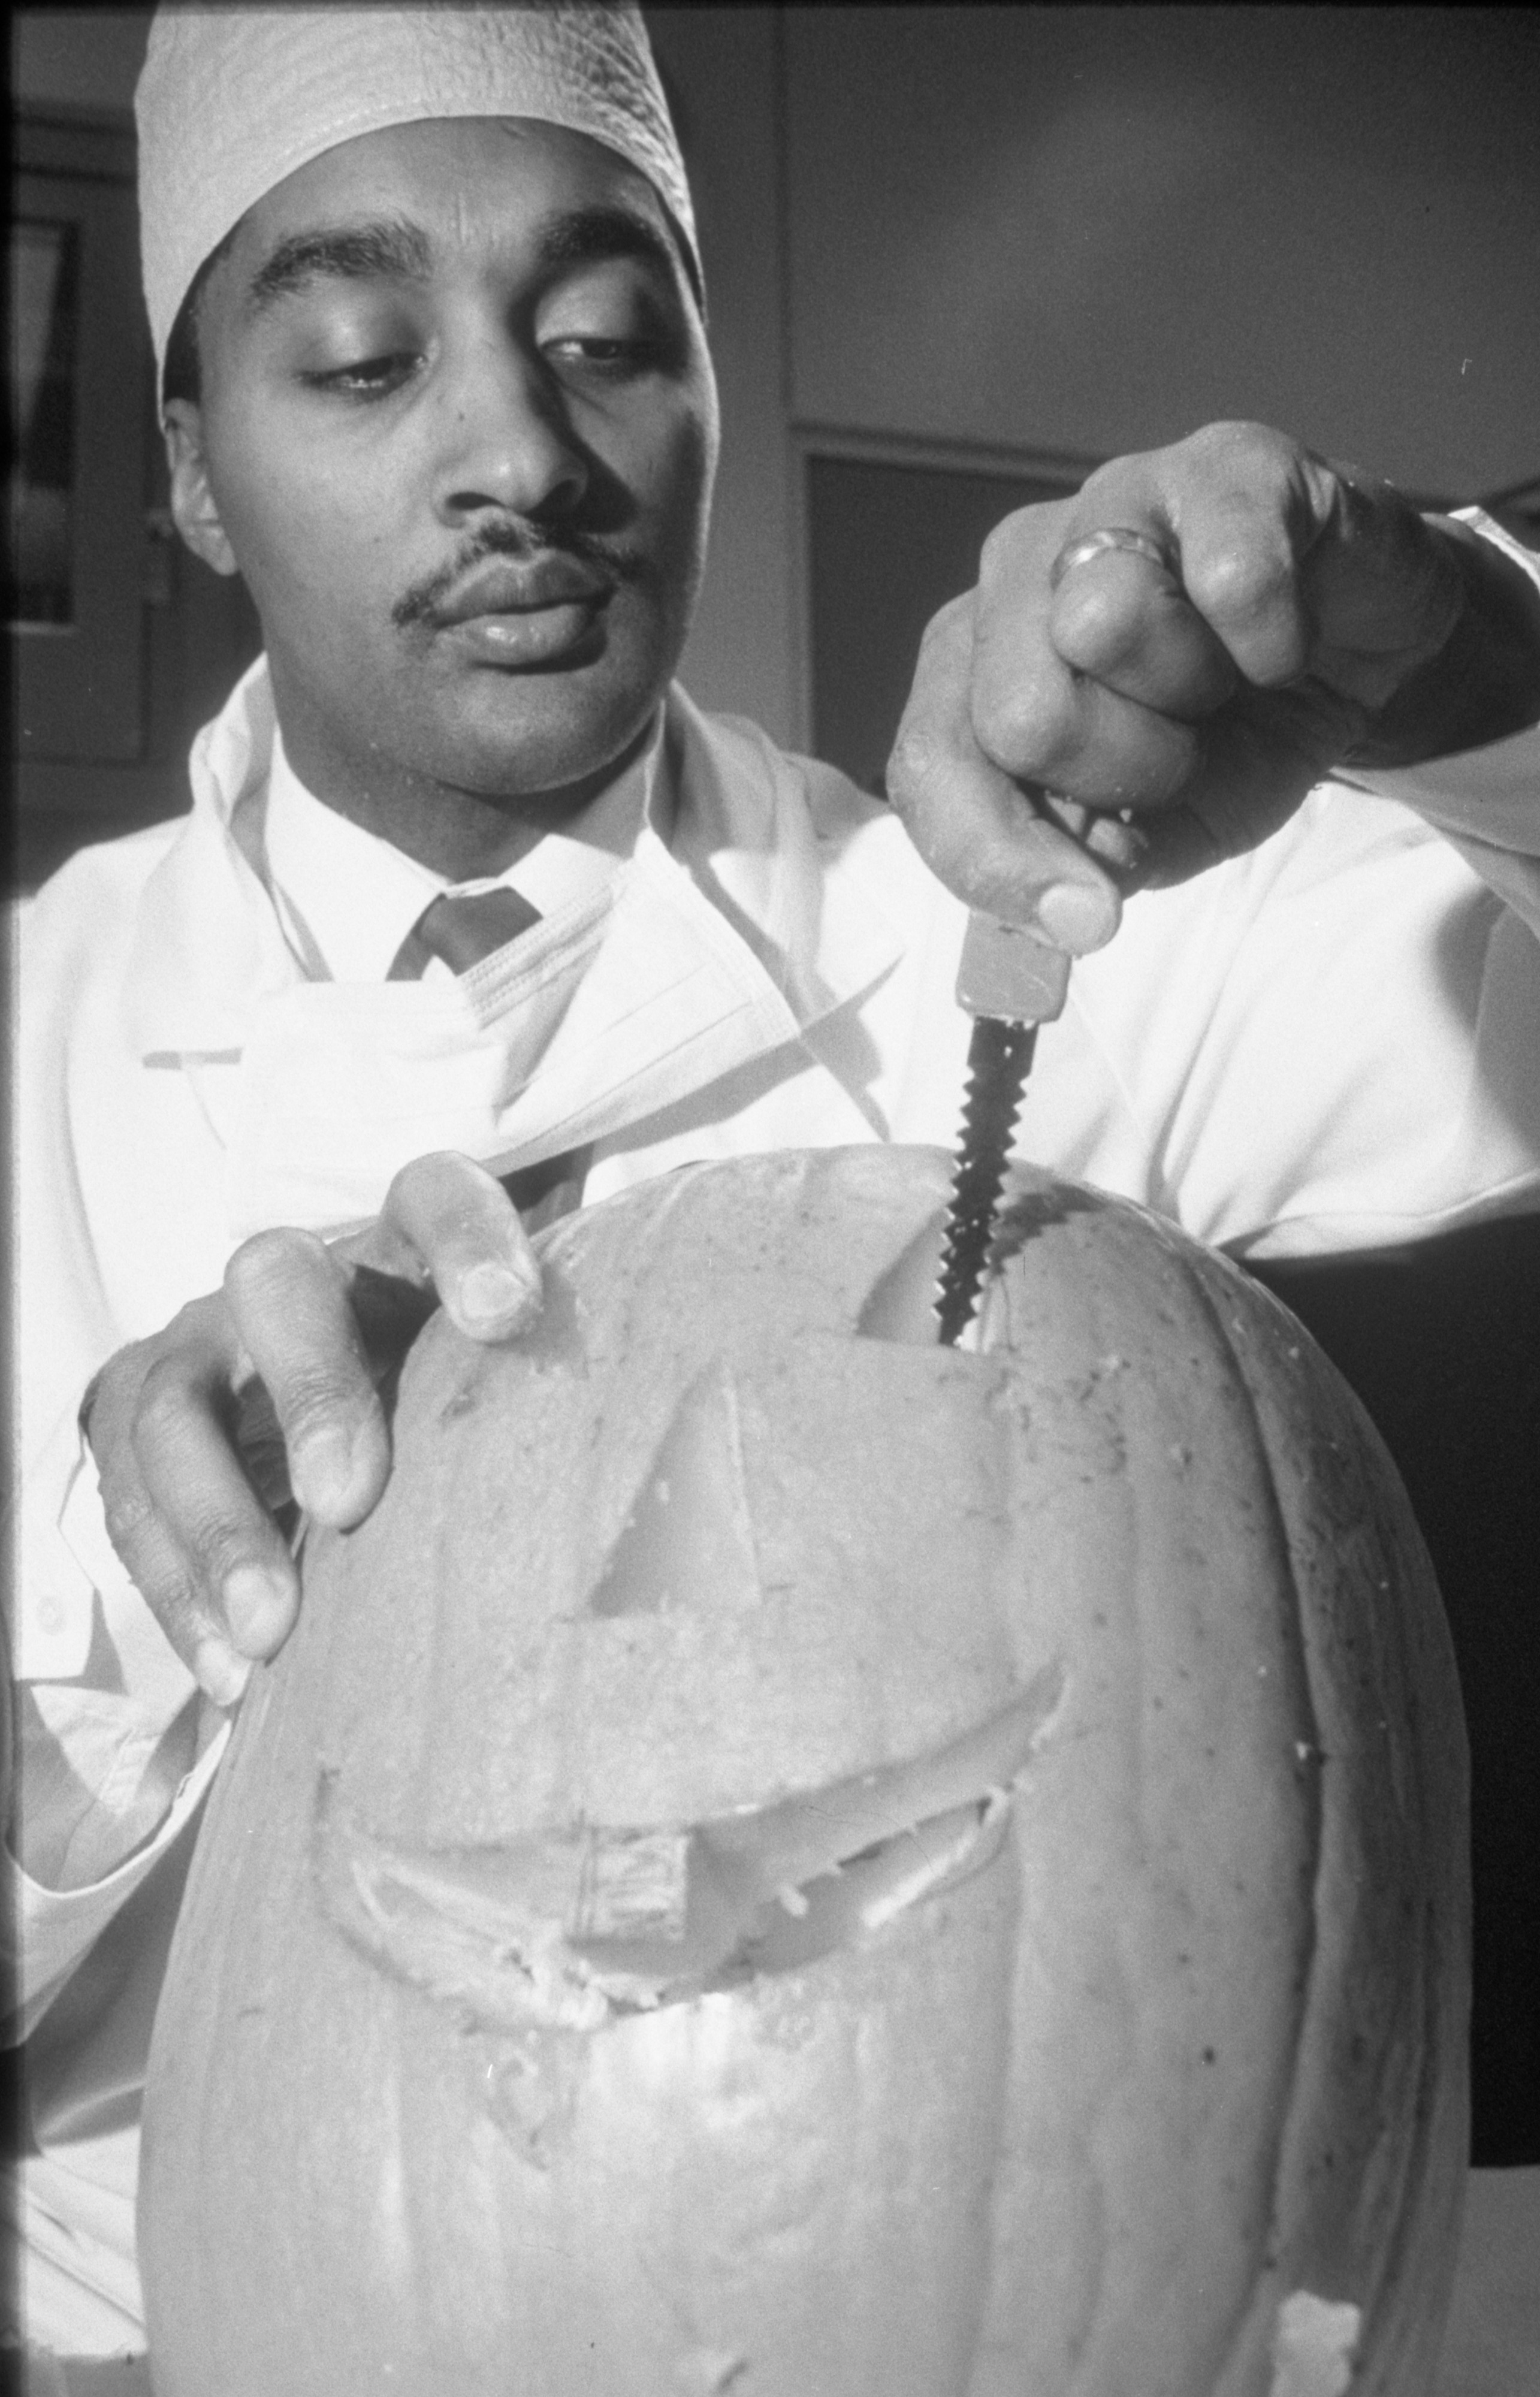 Dr. Ted Coleman Demonstrates Pumpkin Carving With A Serrated Knife, October 1988 image